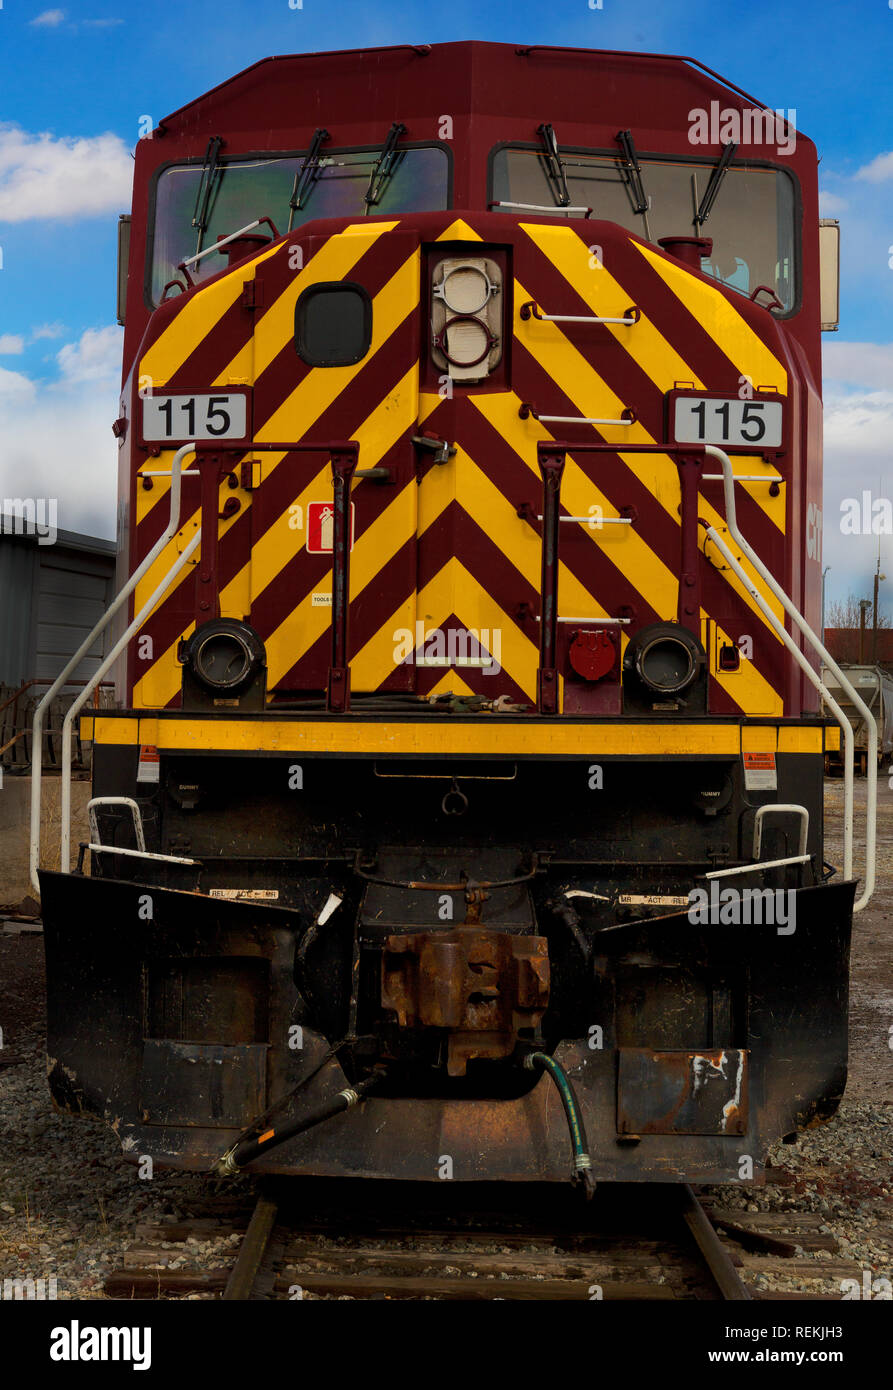 Rail Delivery Group Stock Photos & Rail Delivery Group Stock Images